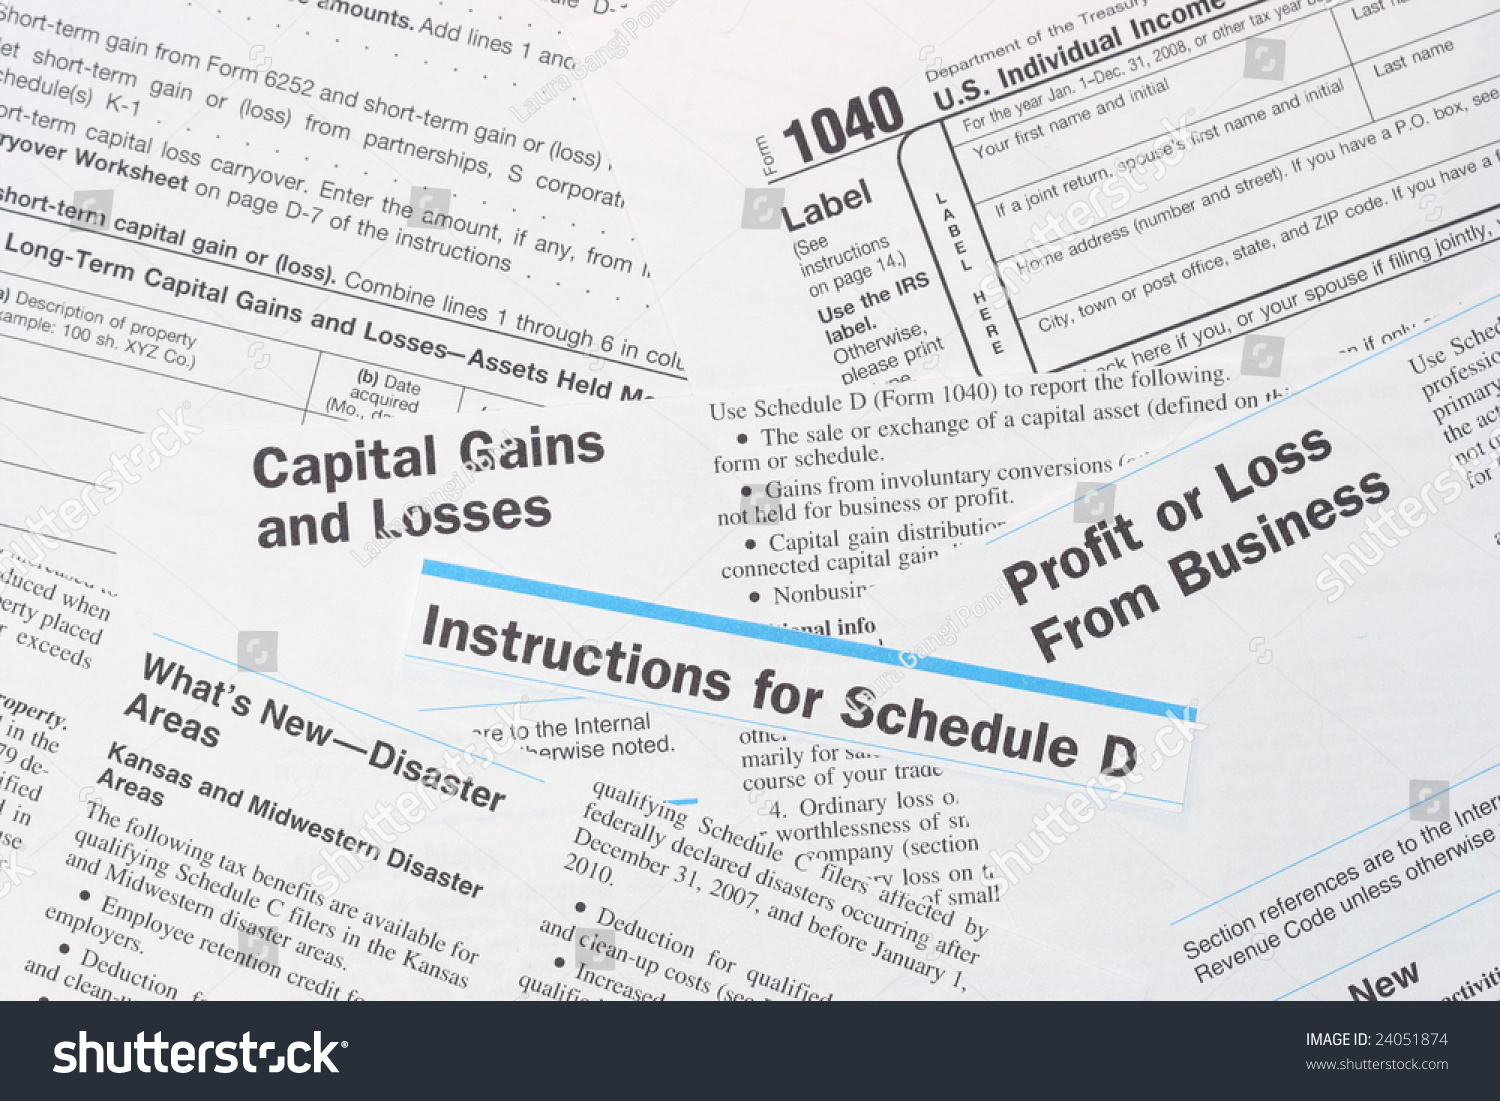 IRS Form 1040: US Individual Income Tax Return | EZ Canvas